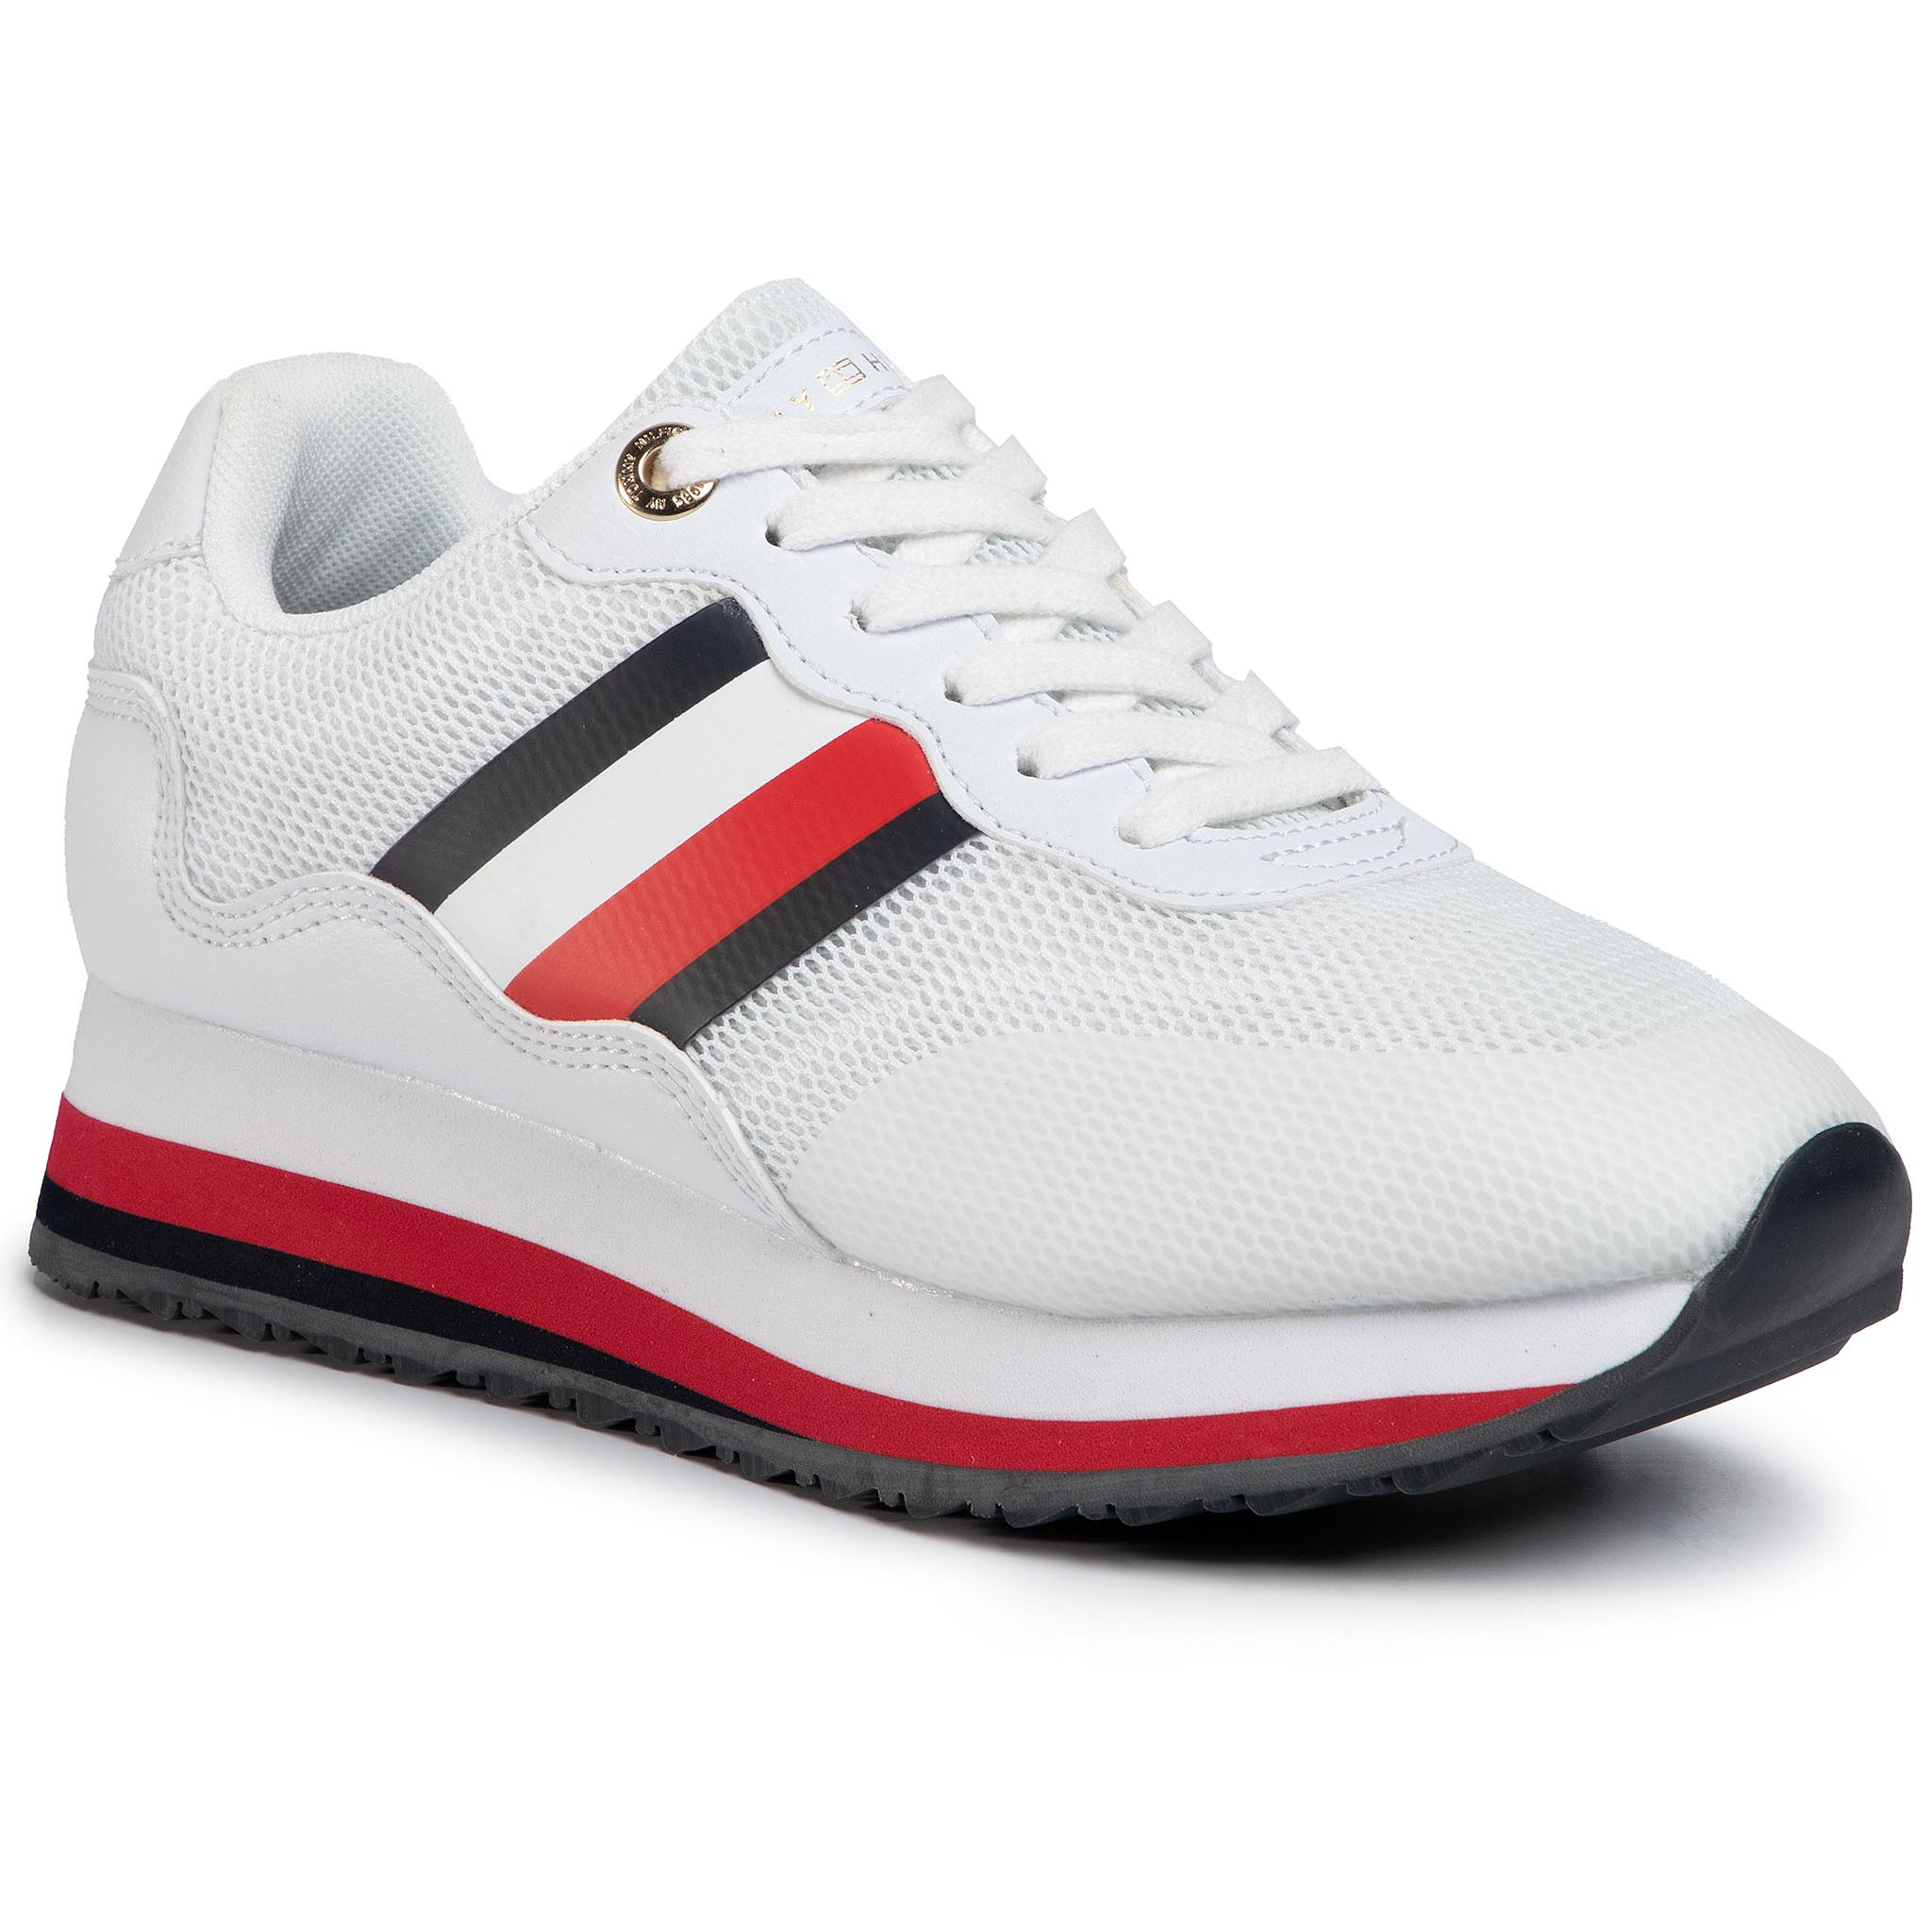 Sneakers TOMMY HILFIGER - Sporty Tommy Retro Runner FW0FW04688 White YBS